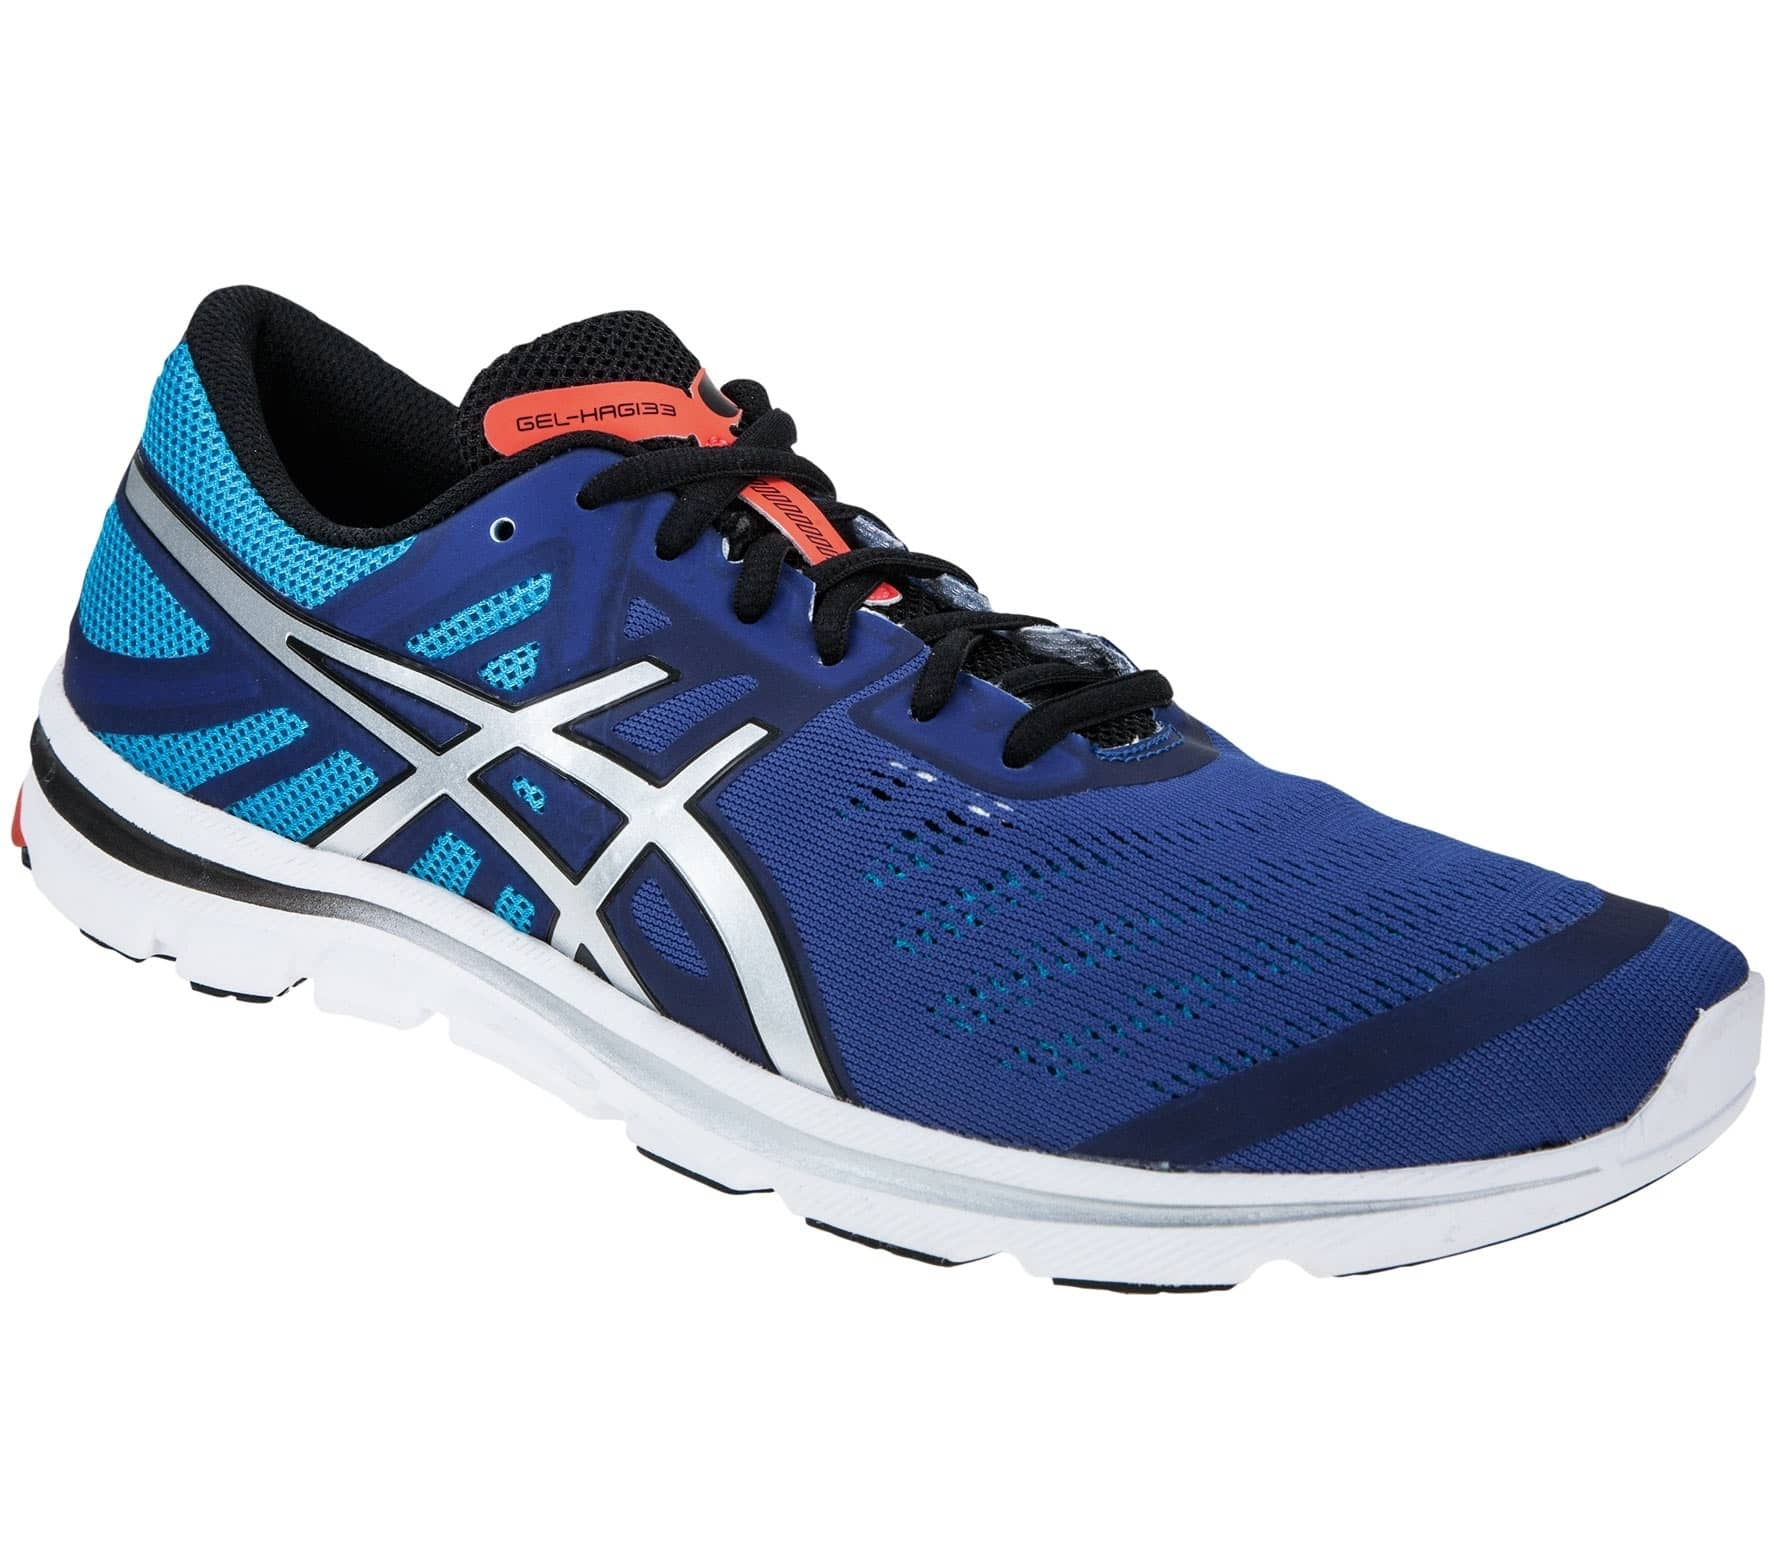 ASICS Gel Electro33 men's running shoes Hombre